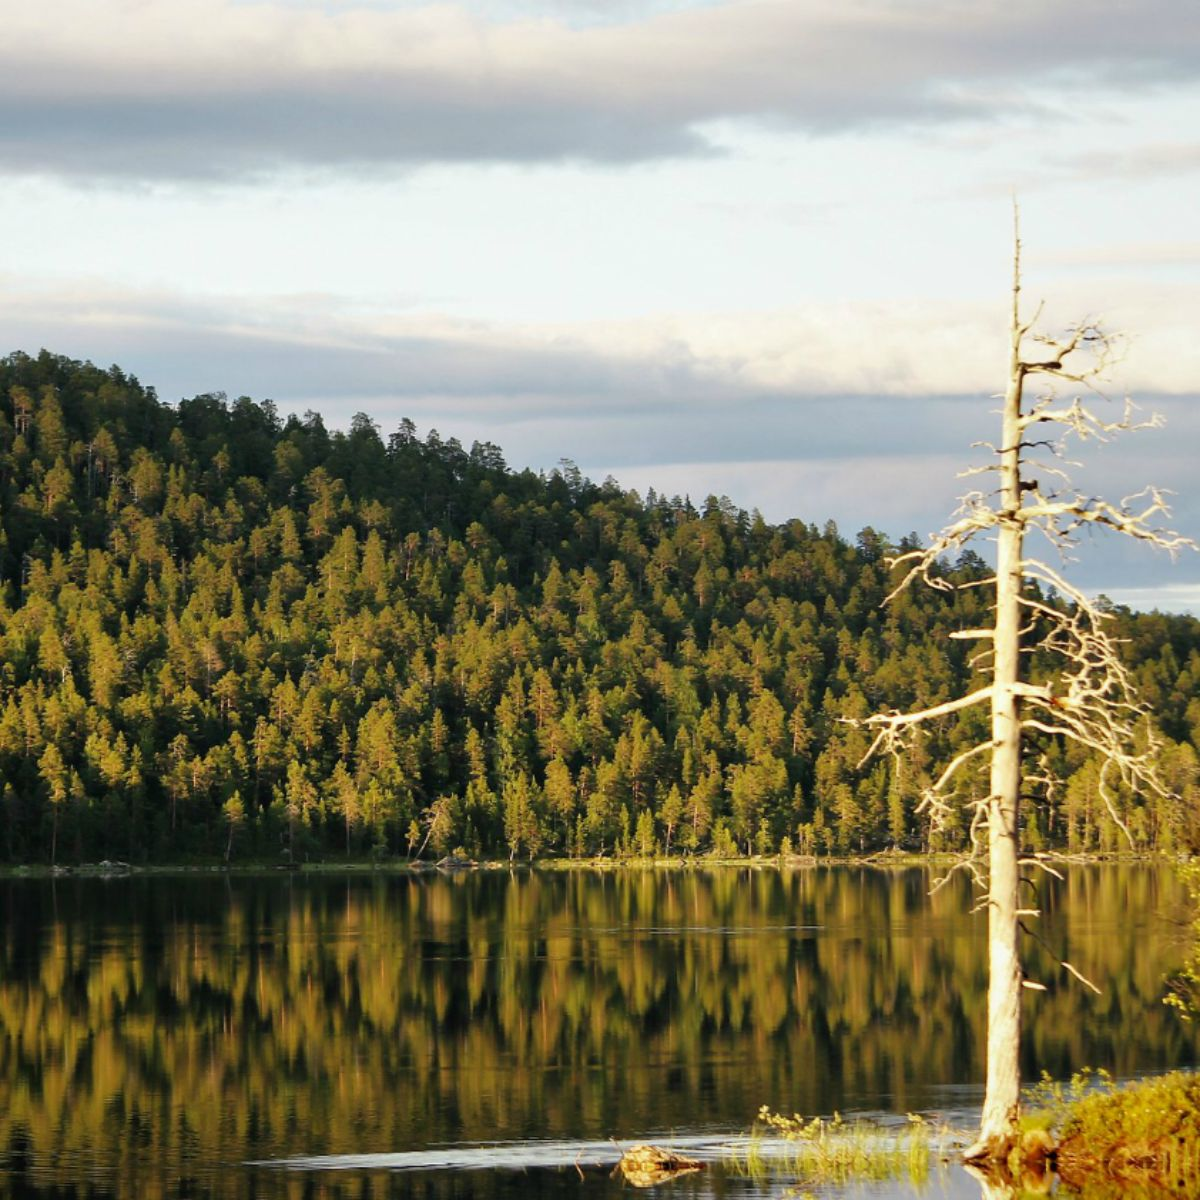 A forest alongside Lake Inari, in Finland. Finland has pledged to be carbon free by 2035 through sustainable forest use (Photo: Ilkka Jukarainen, via Flickr, CC BY-ND 2.0)